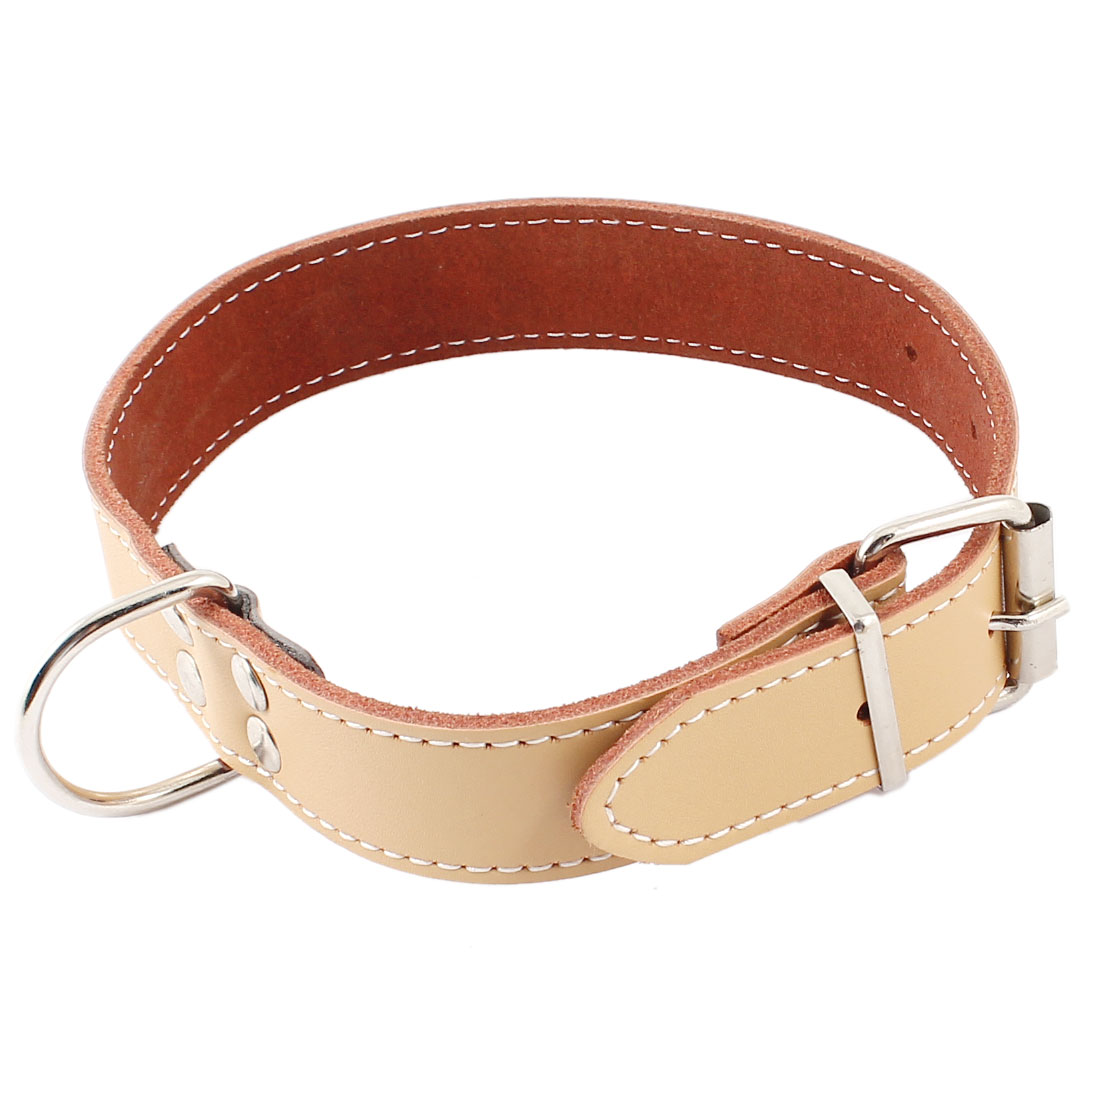 Single Prong Buckle Faux Leather Adjustable Belt Collar Necklace Khaki for Pet Cat Dog Doggy